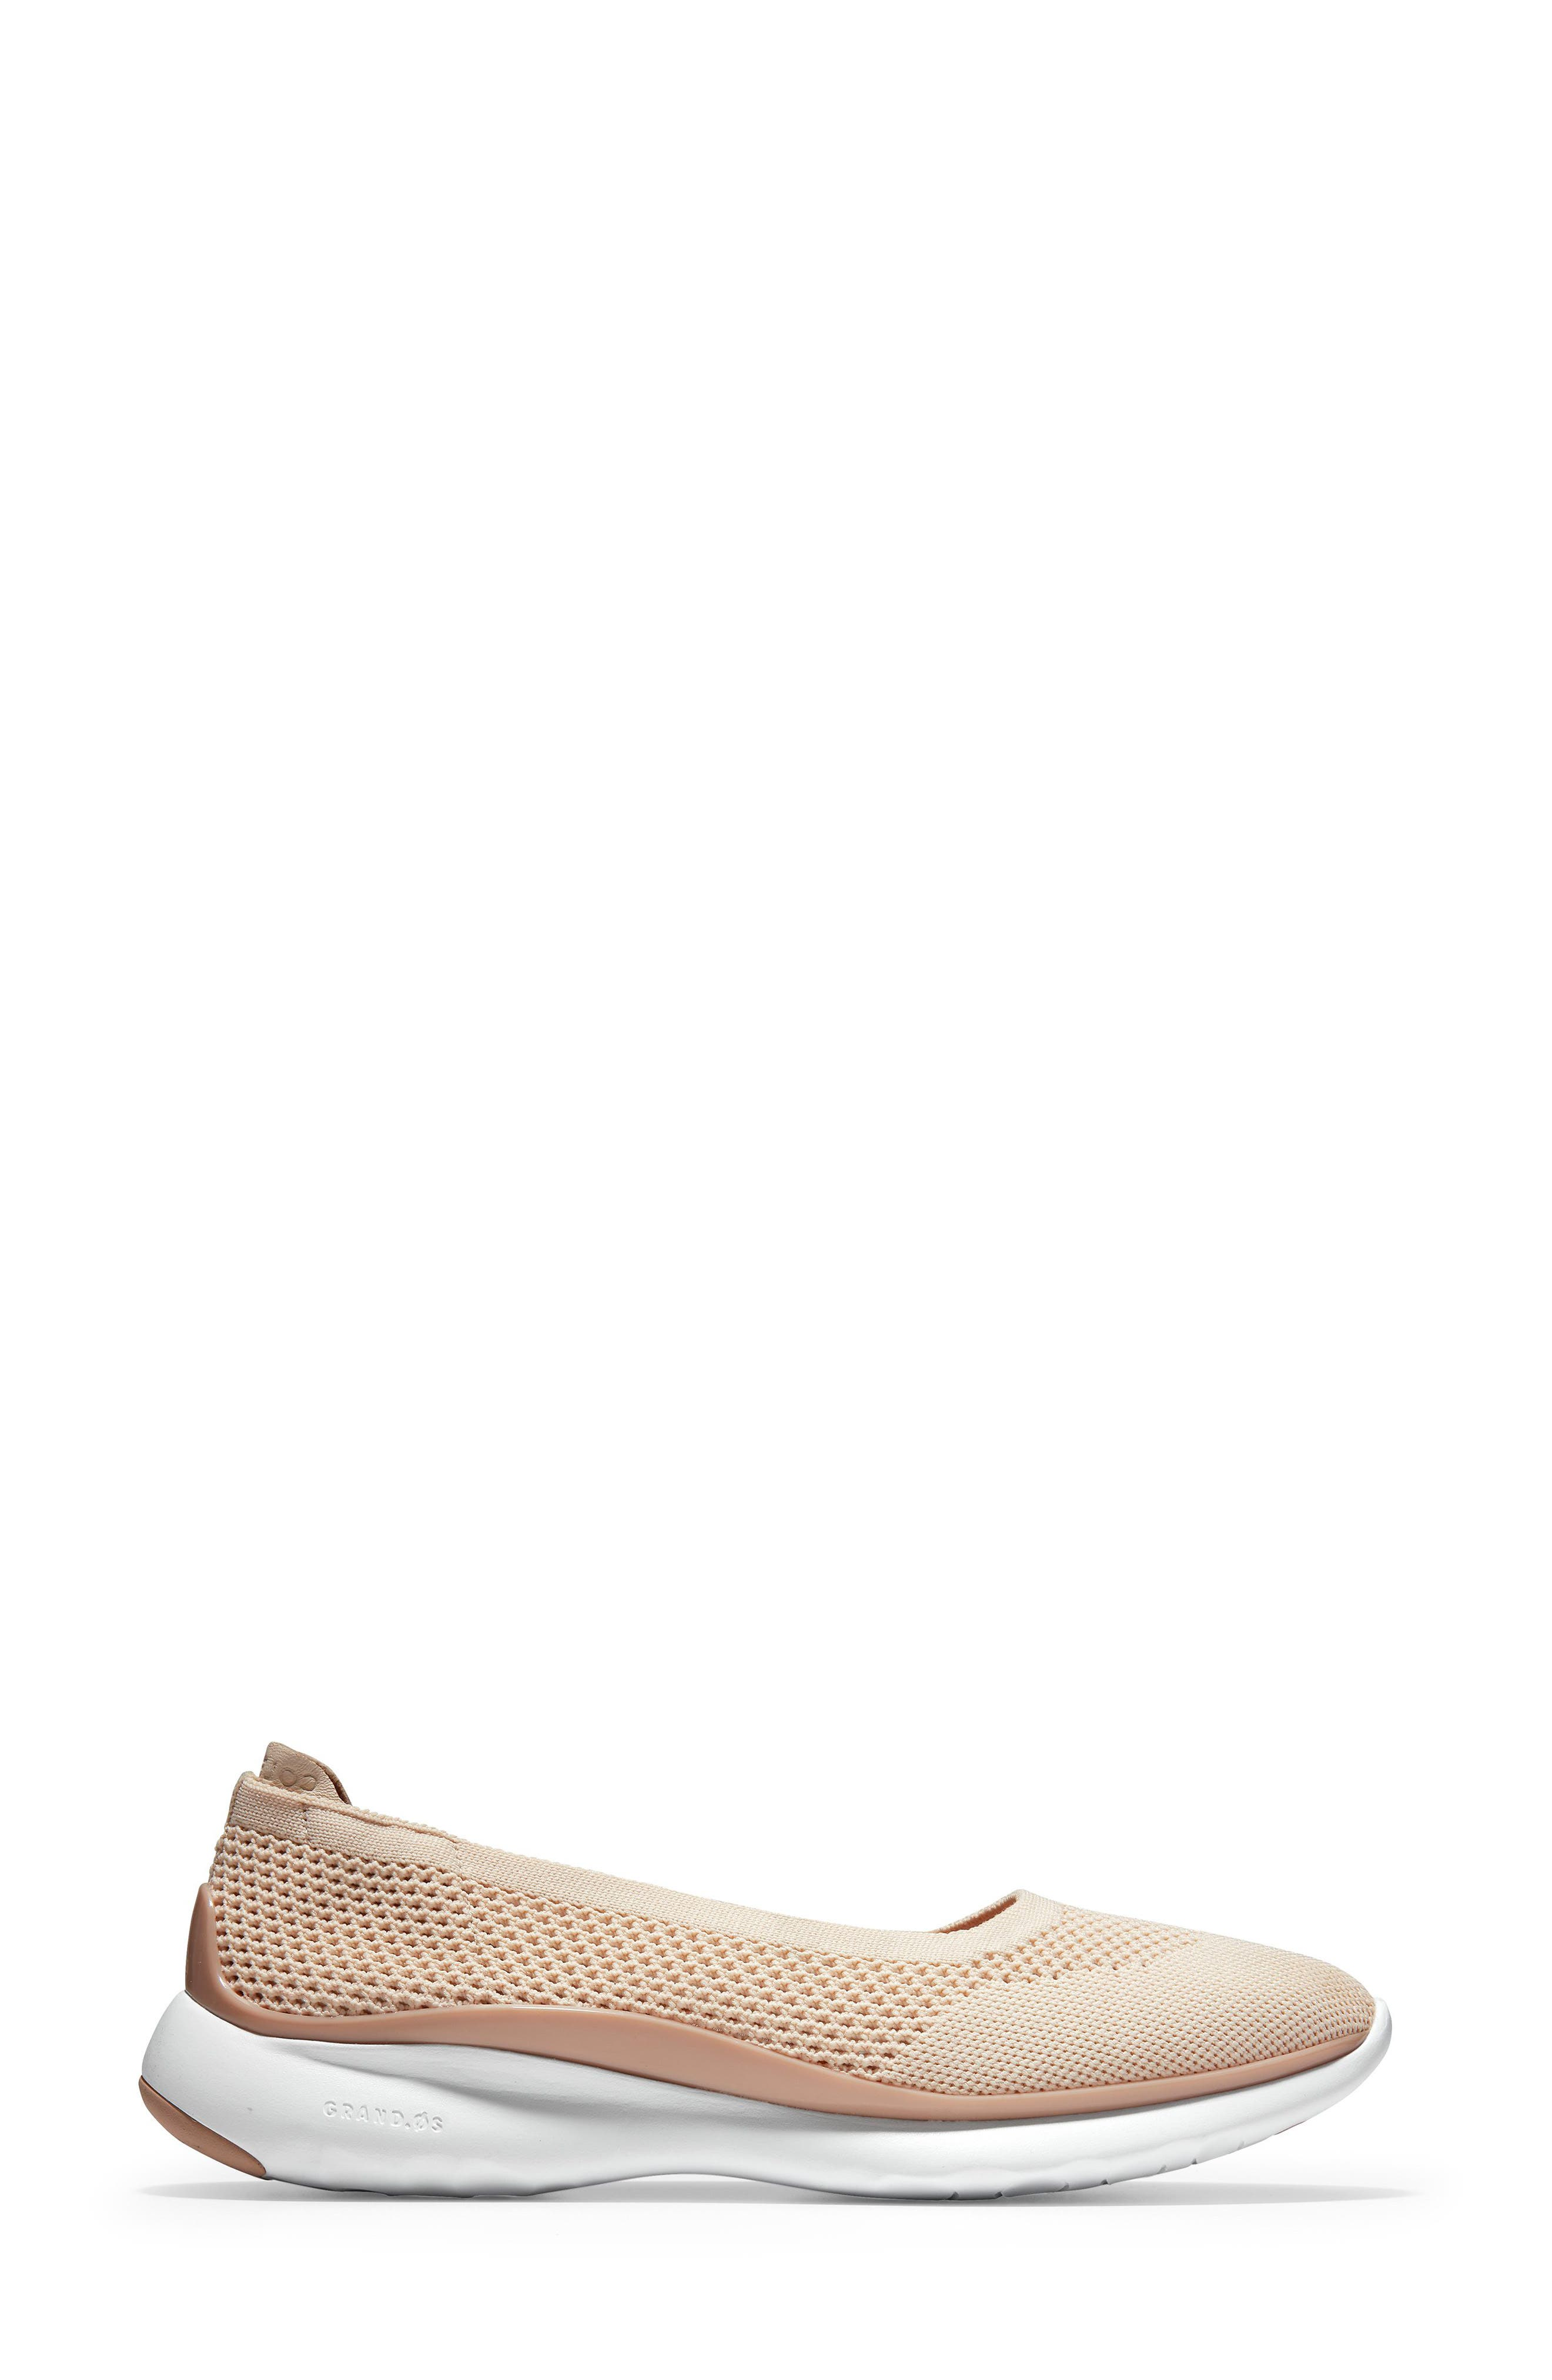 COLE HAAN, ZeroGrand Knit Sneaker, Alternate thumbnail 3, color, SAND/ ROSE KNIT/ LEATHER